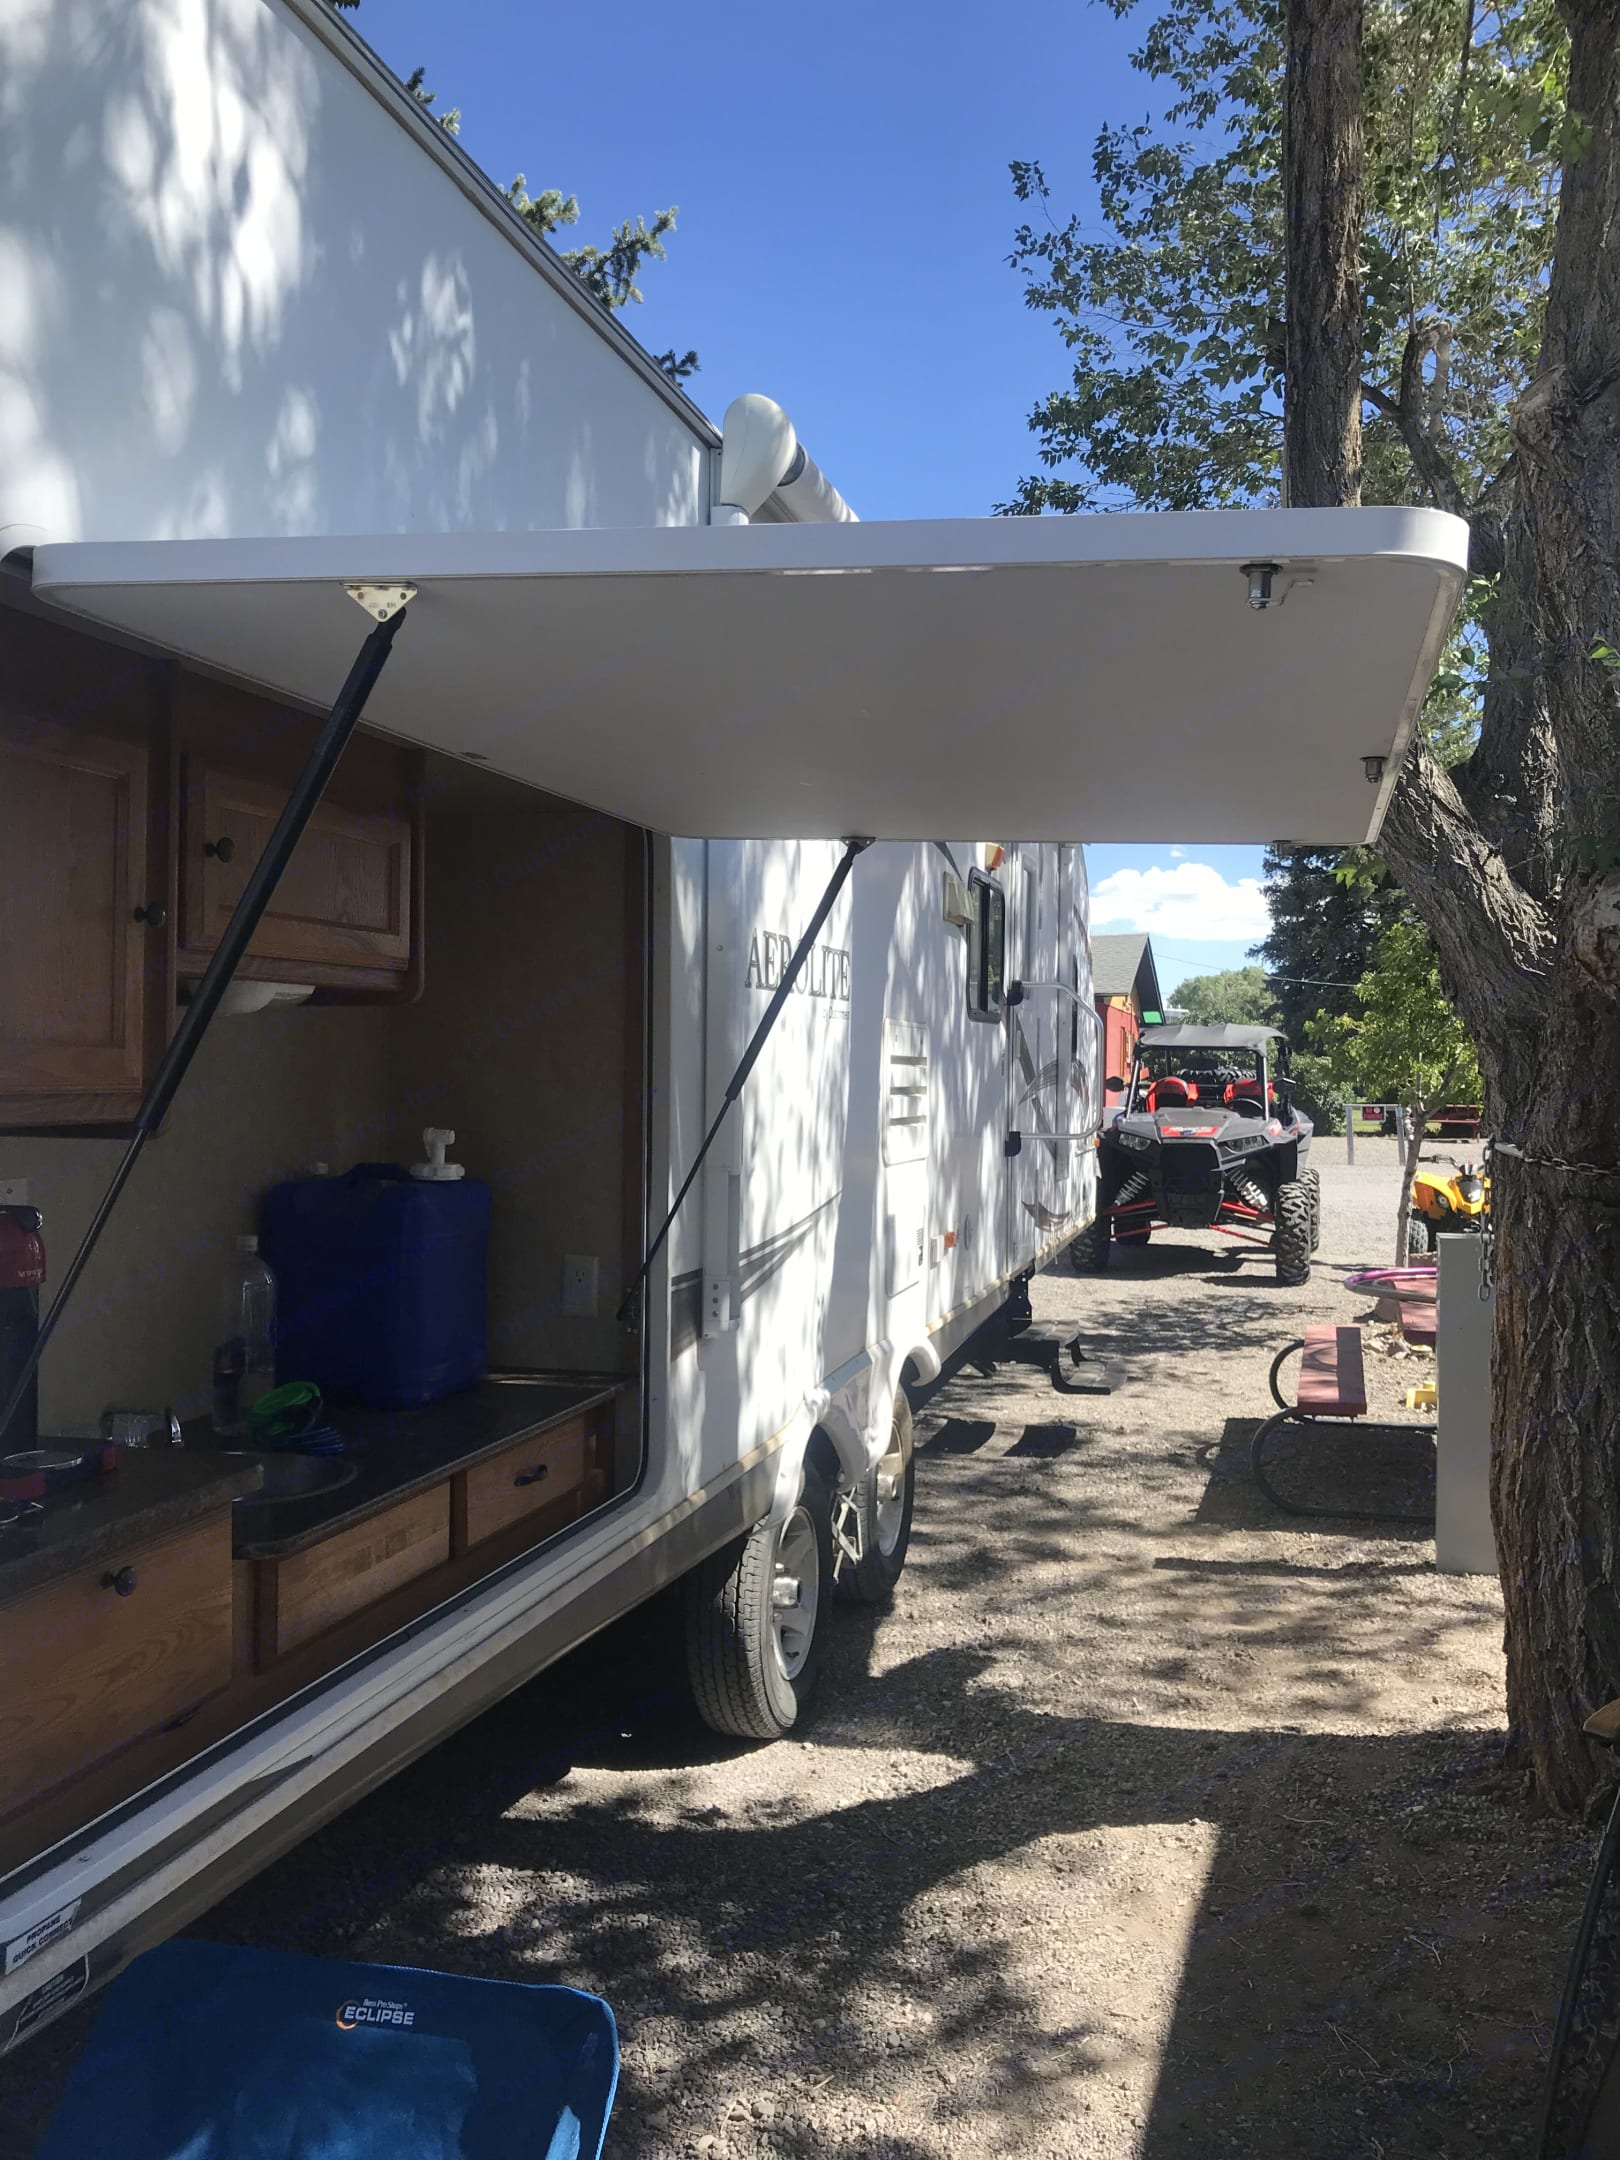 Has outside counter, stove and storage. Aerolite Travel Trailer 2010